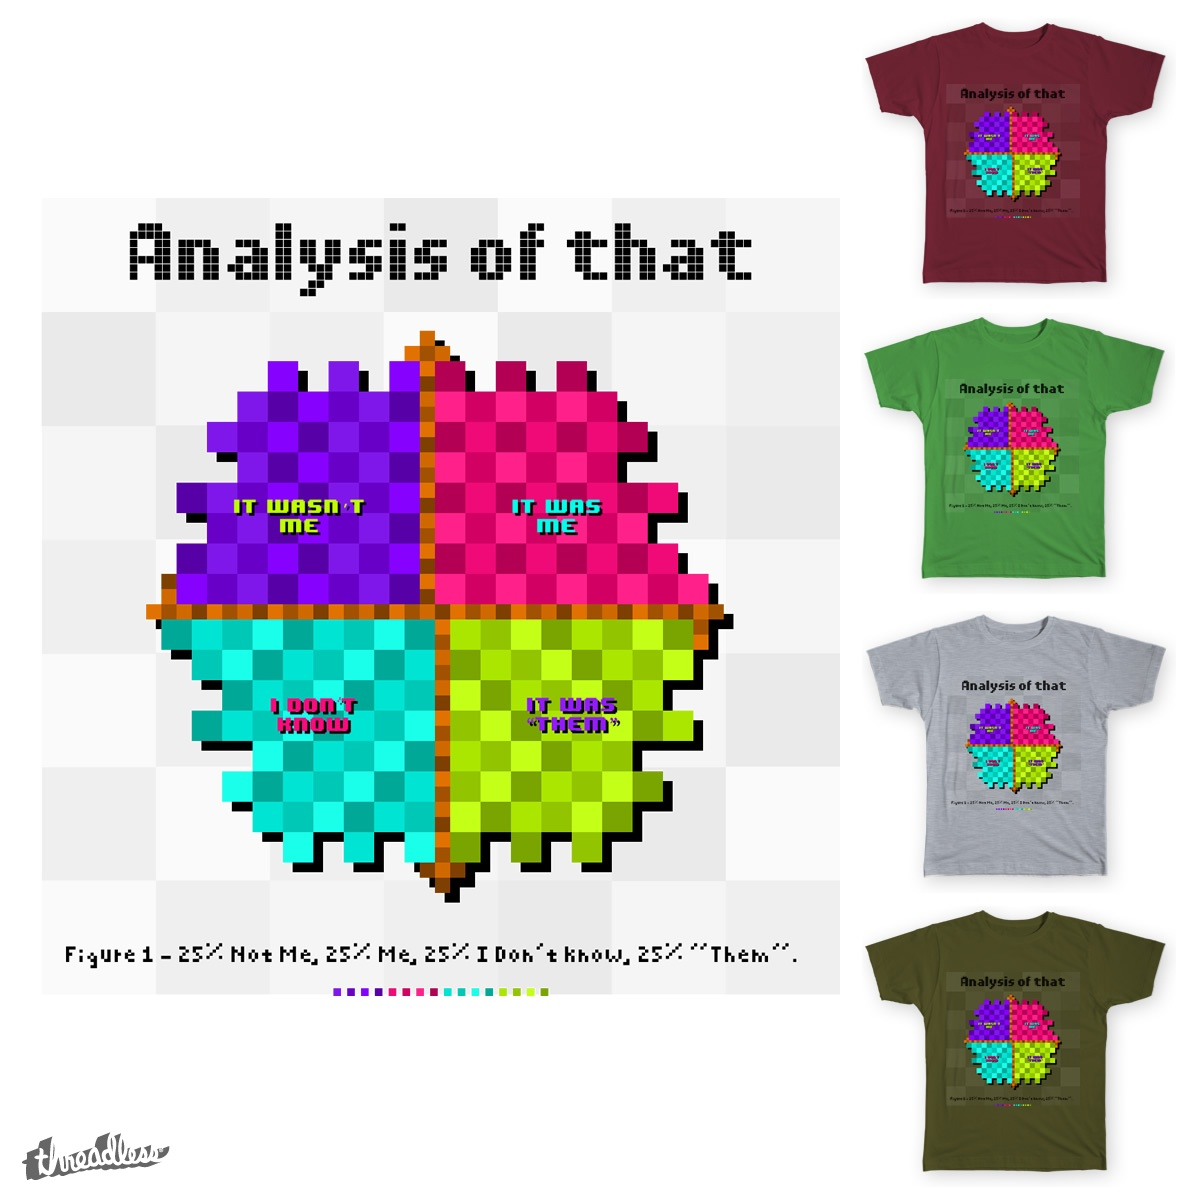 Analysis of that, a cool t-shirt design